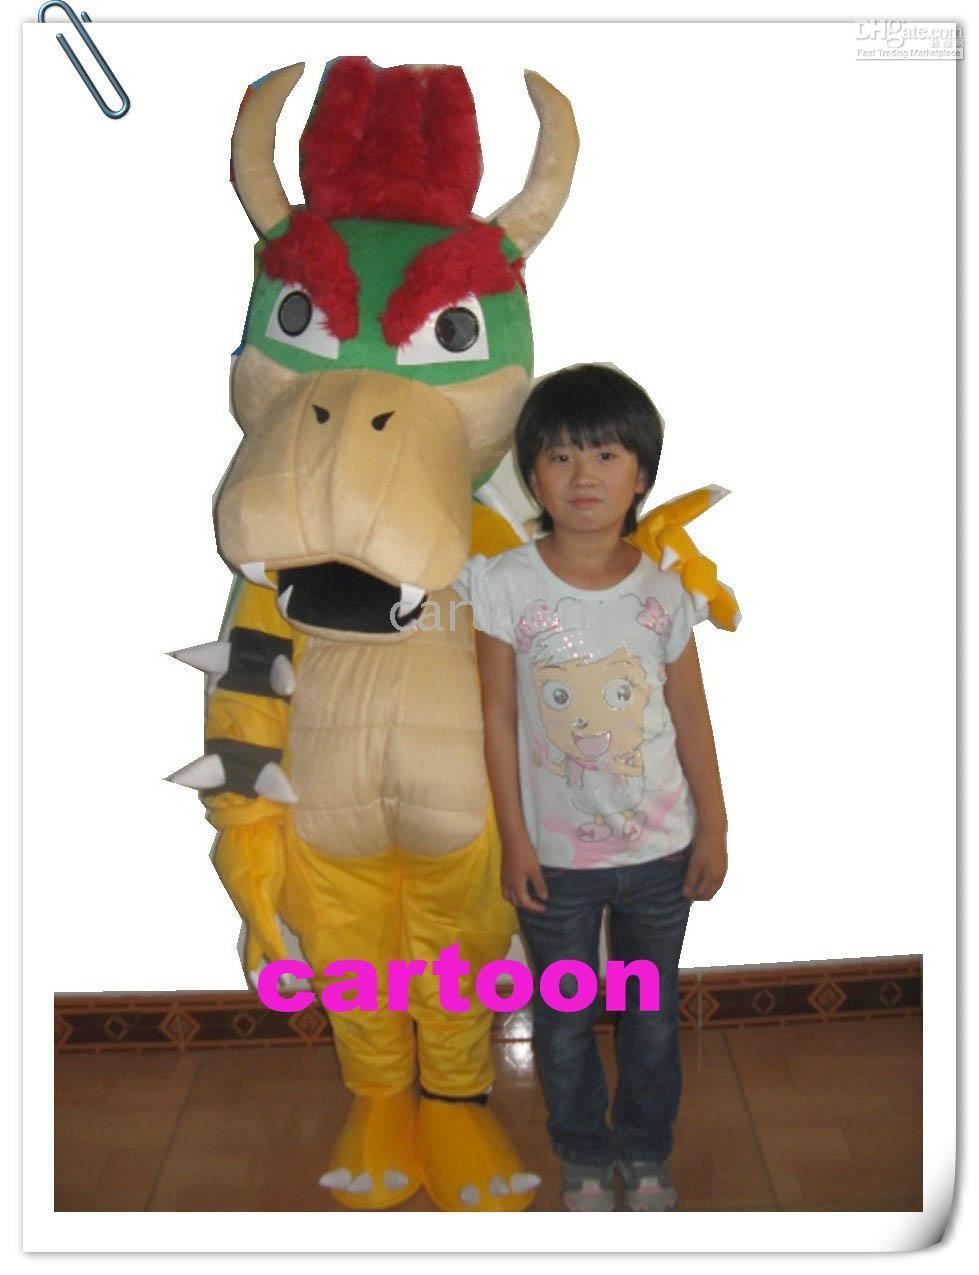 Super Mario Bros King Bowser Mascot Costume Child Size Sheep Costume Infant Costumes From Cartoon $226.02| Dhgate.Com  sc 1 st  DHgate.com : cheap mascot costumes for kids  - Germanpascual.Com